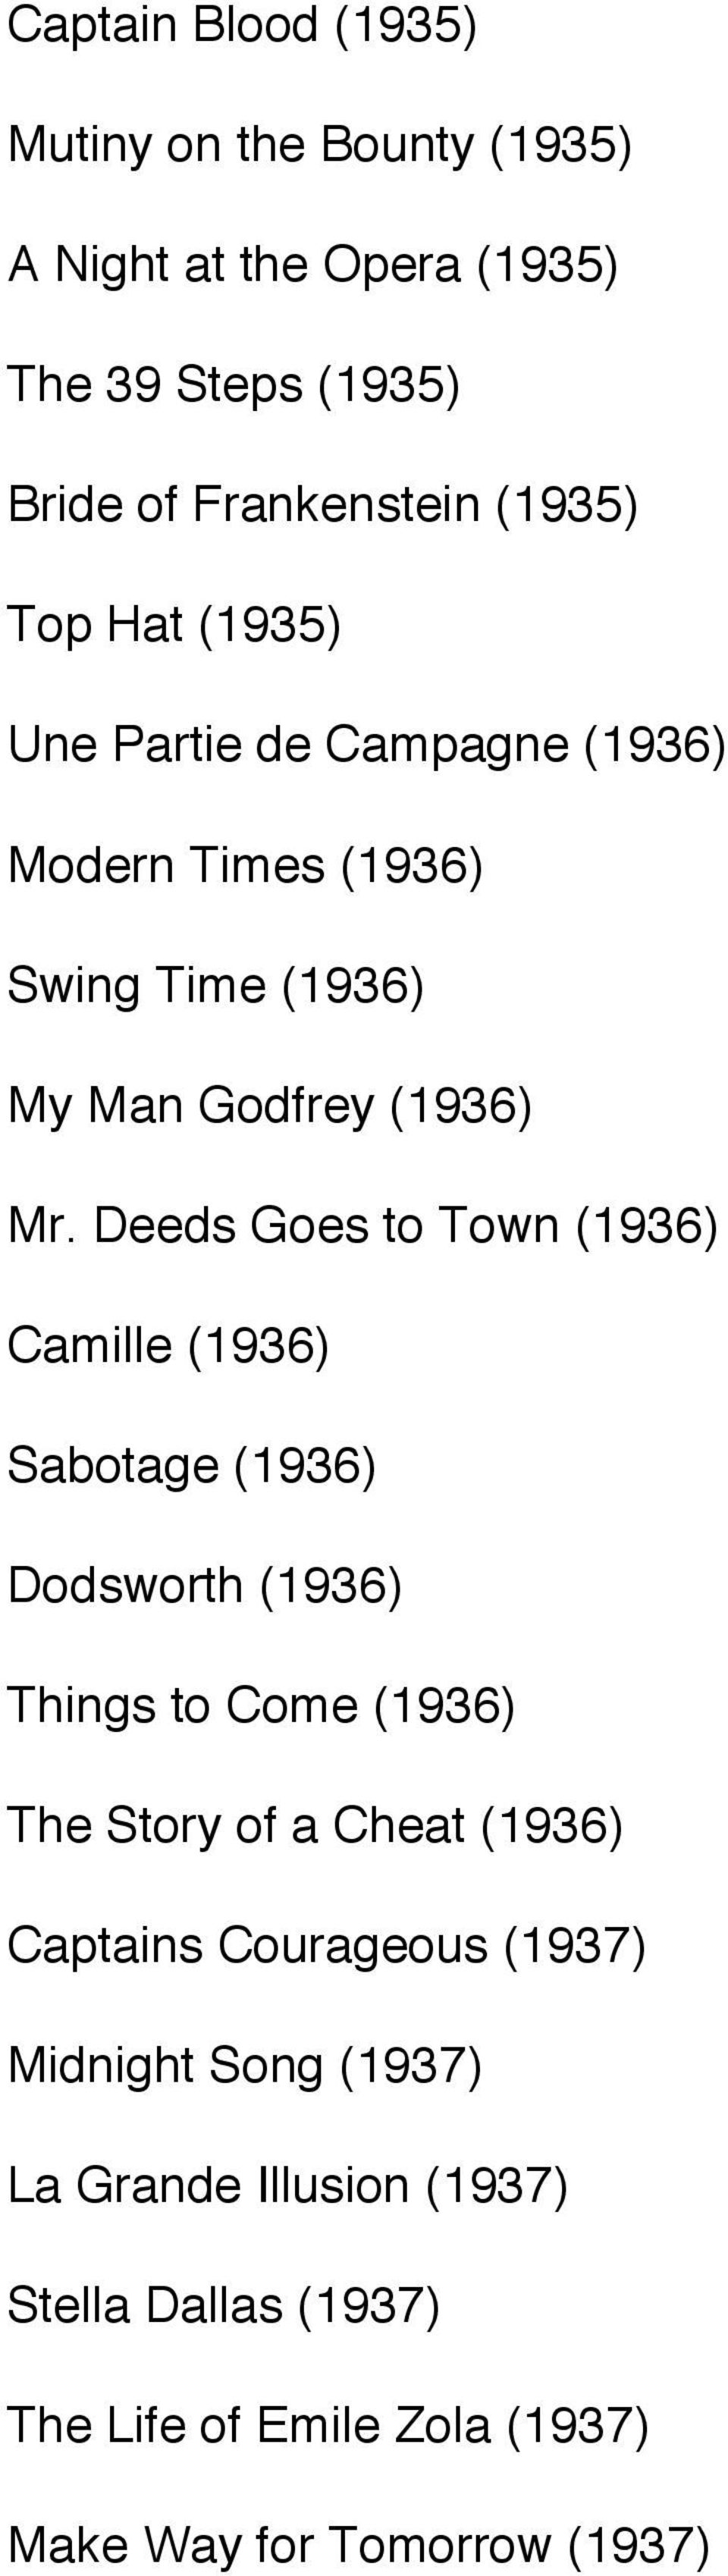 Deeds Goes to Town (1936) Camille (1936) Sabotage (1936) Dodsworth (1936) Things to Come (1936) The Story of a Cheat (1936)